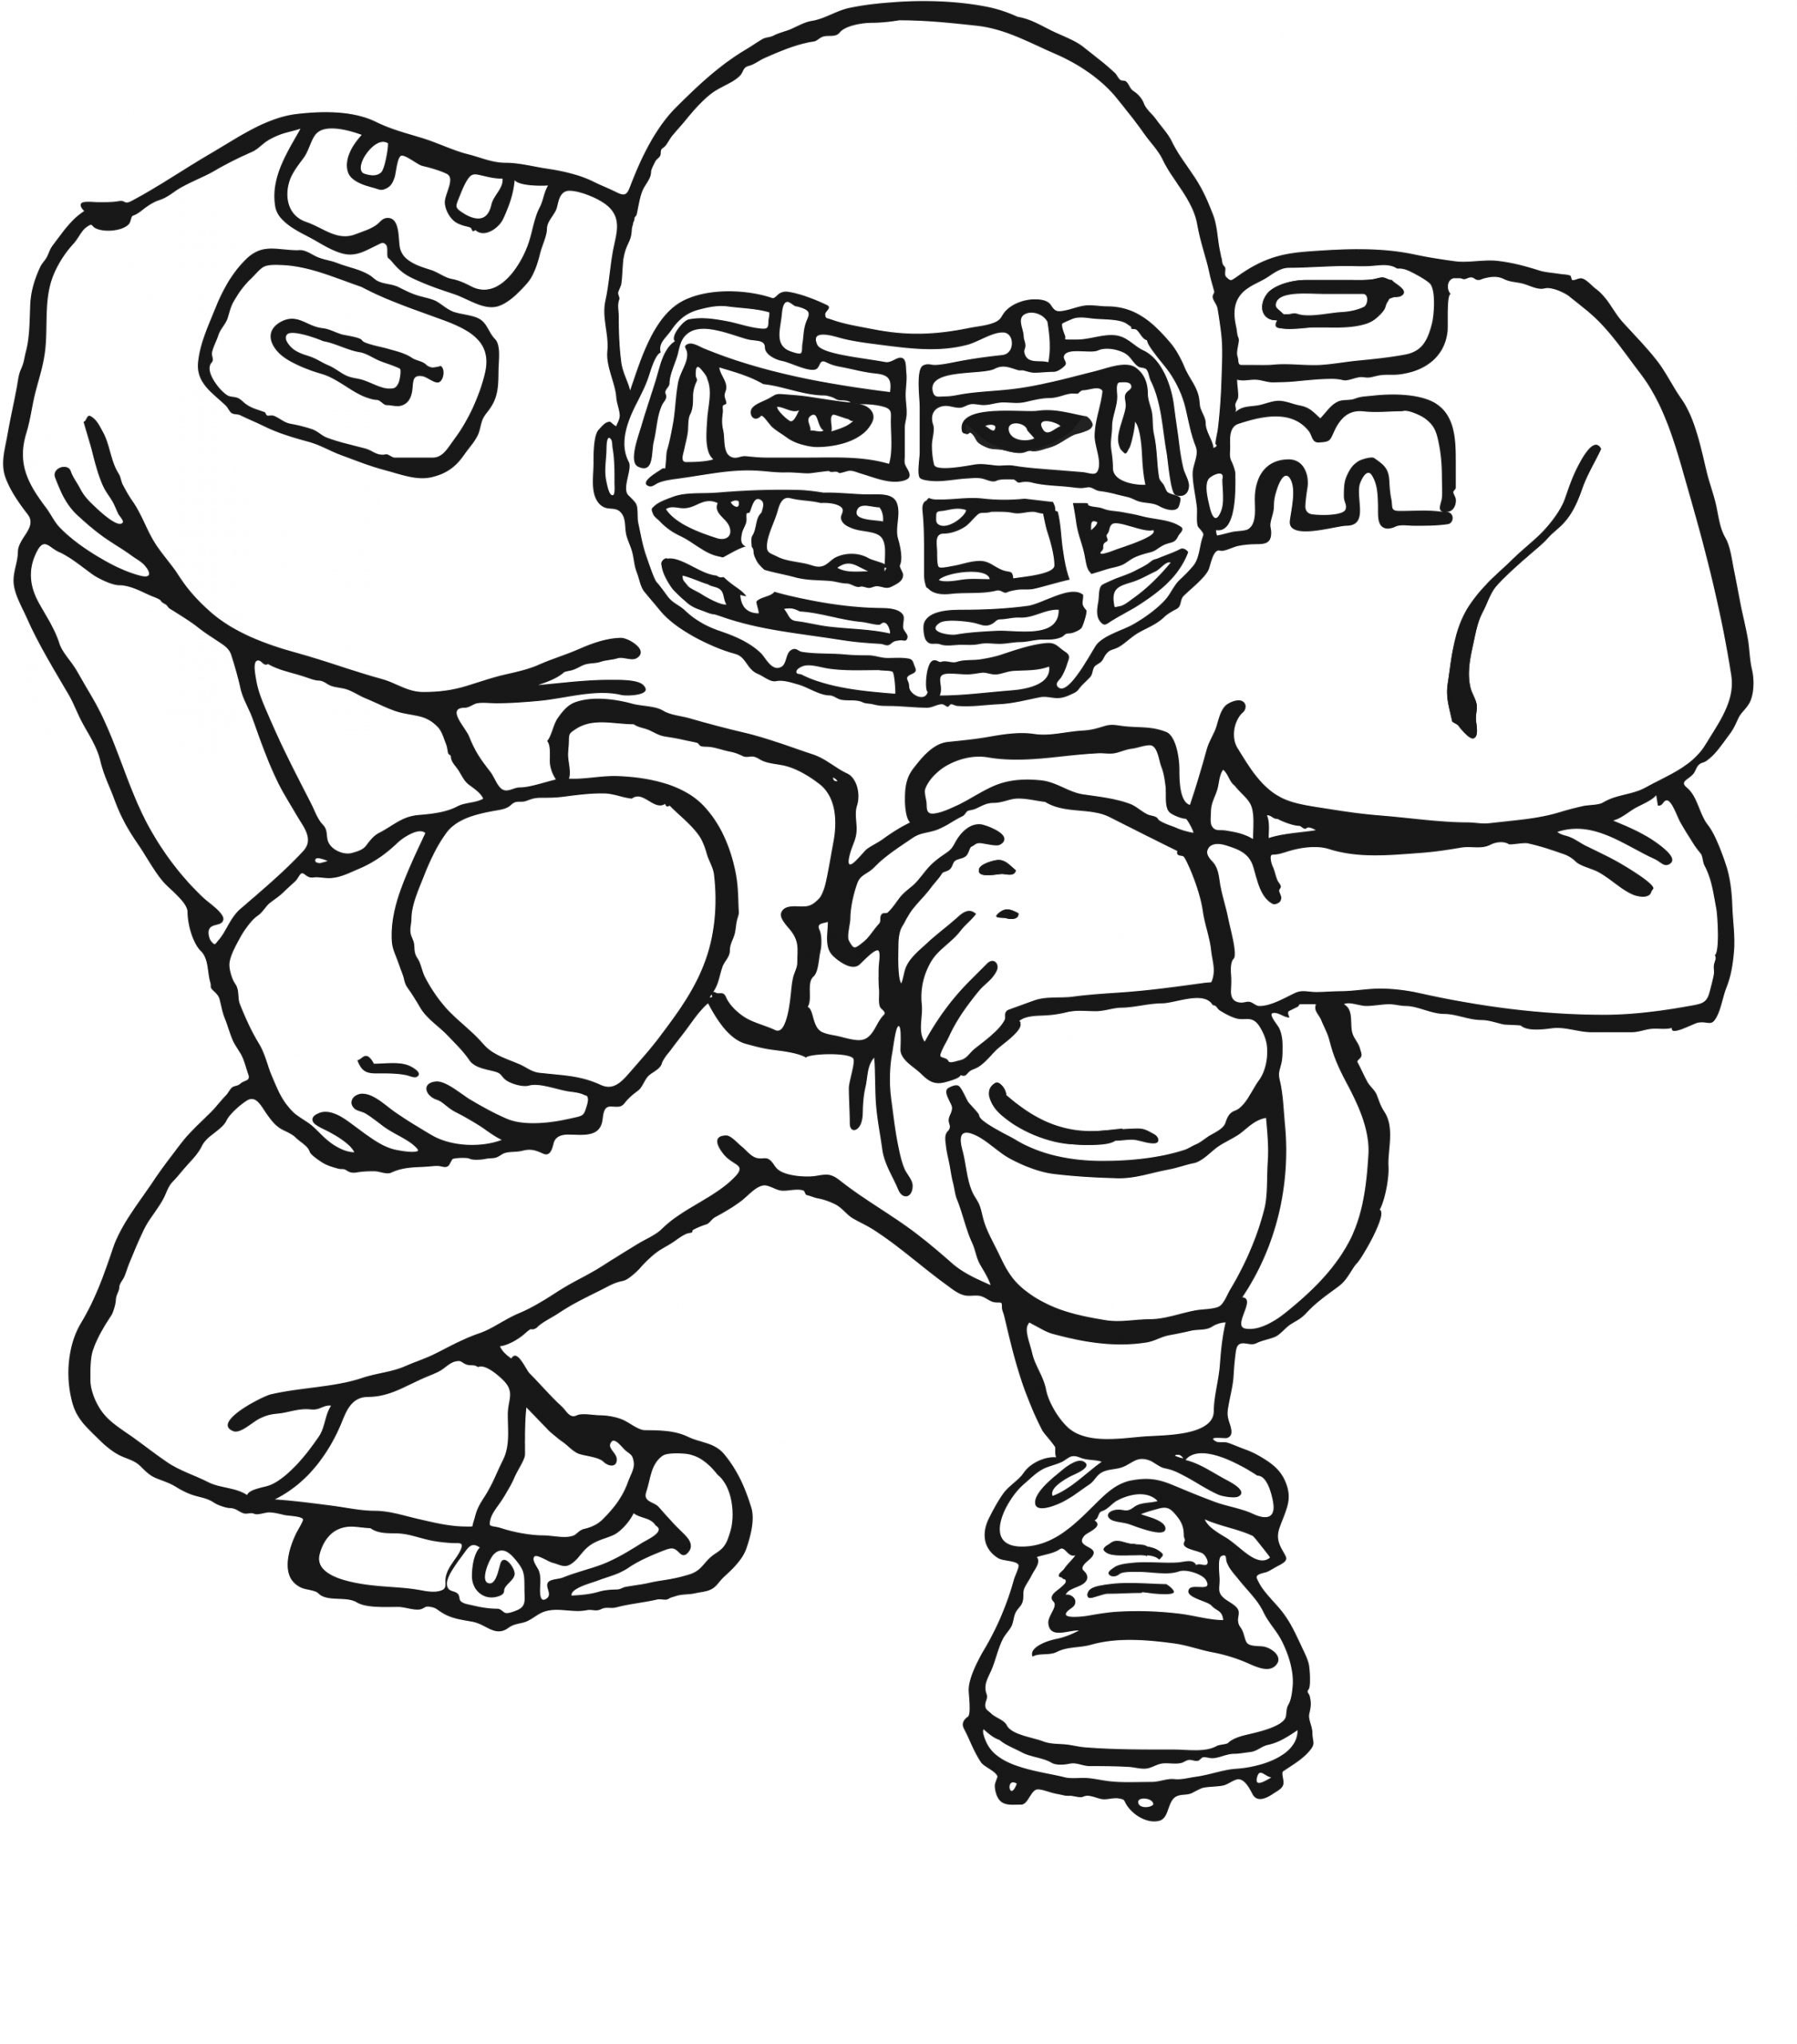 Free Printable Football Coloring Pages for Kids Free Printable Football Coloring Pages for Kids Best